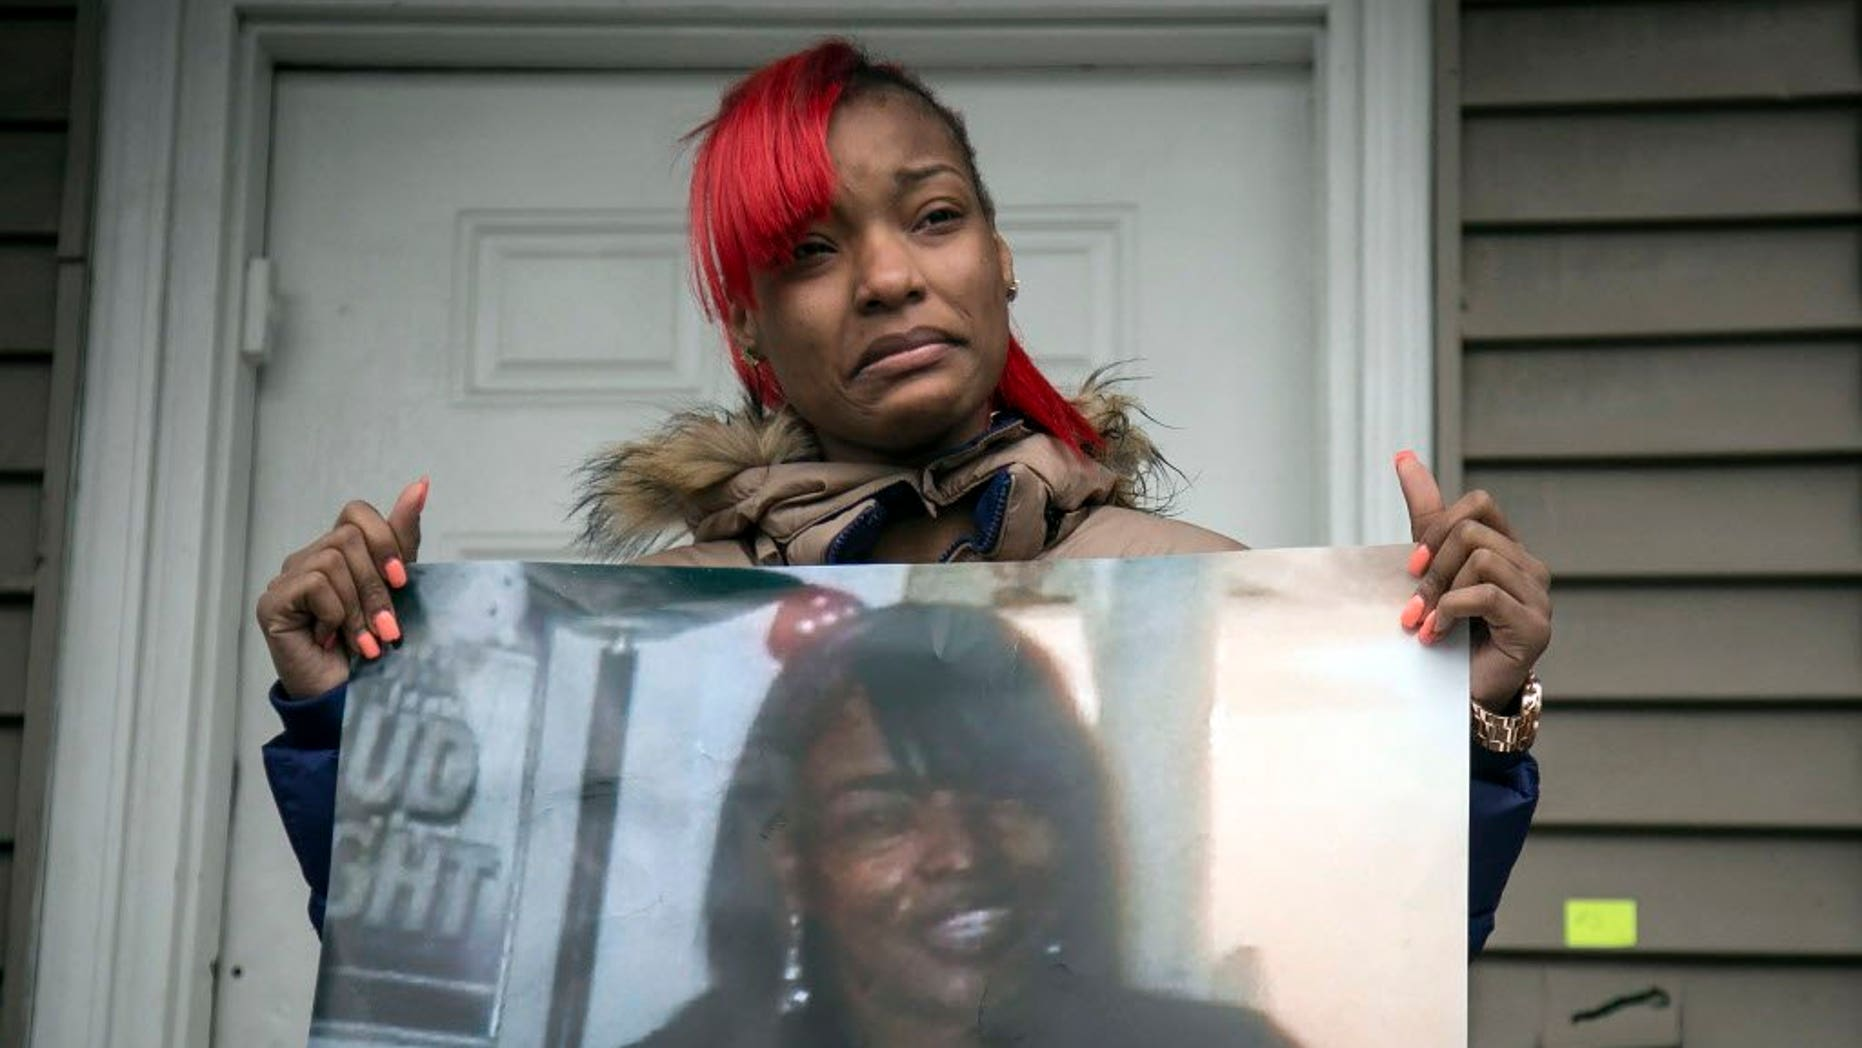 Latonya Jones holds a photo of her mother, Bettie, during a vigil in December. Bettie Jones and Quintonio LeGrier, were killed by Chicago police in December.